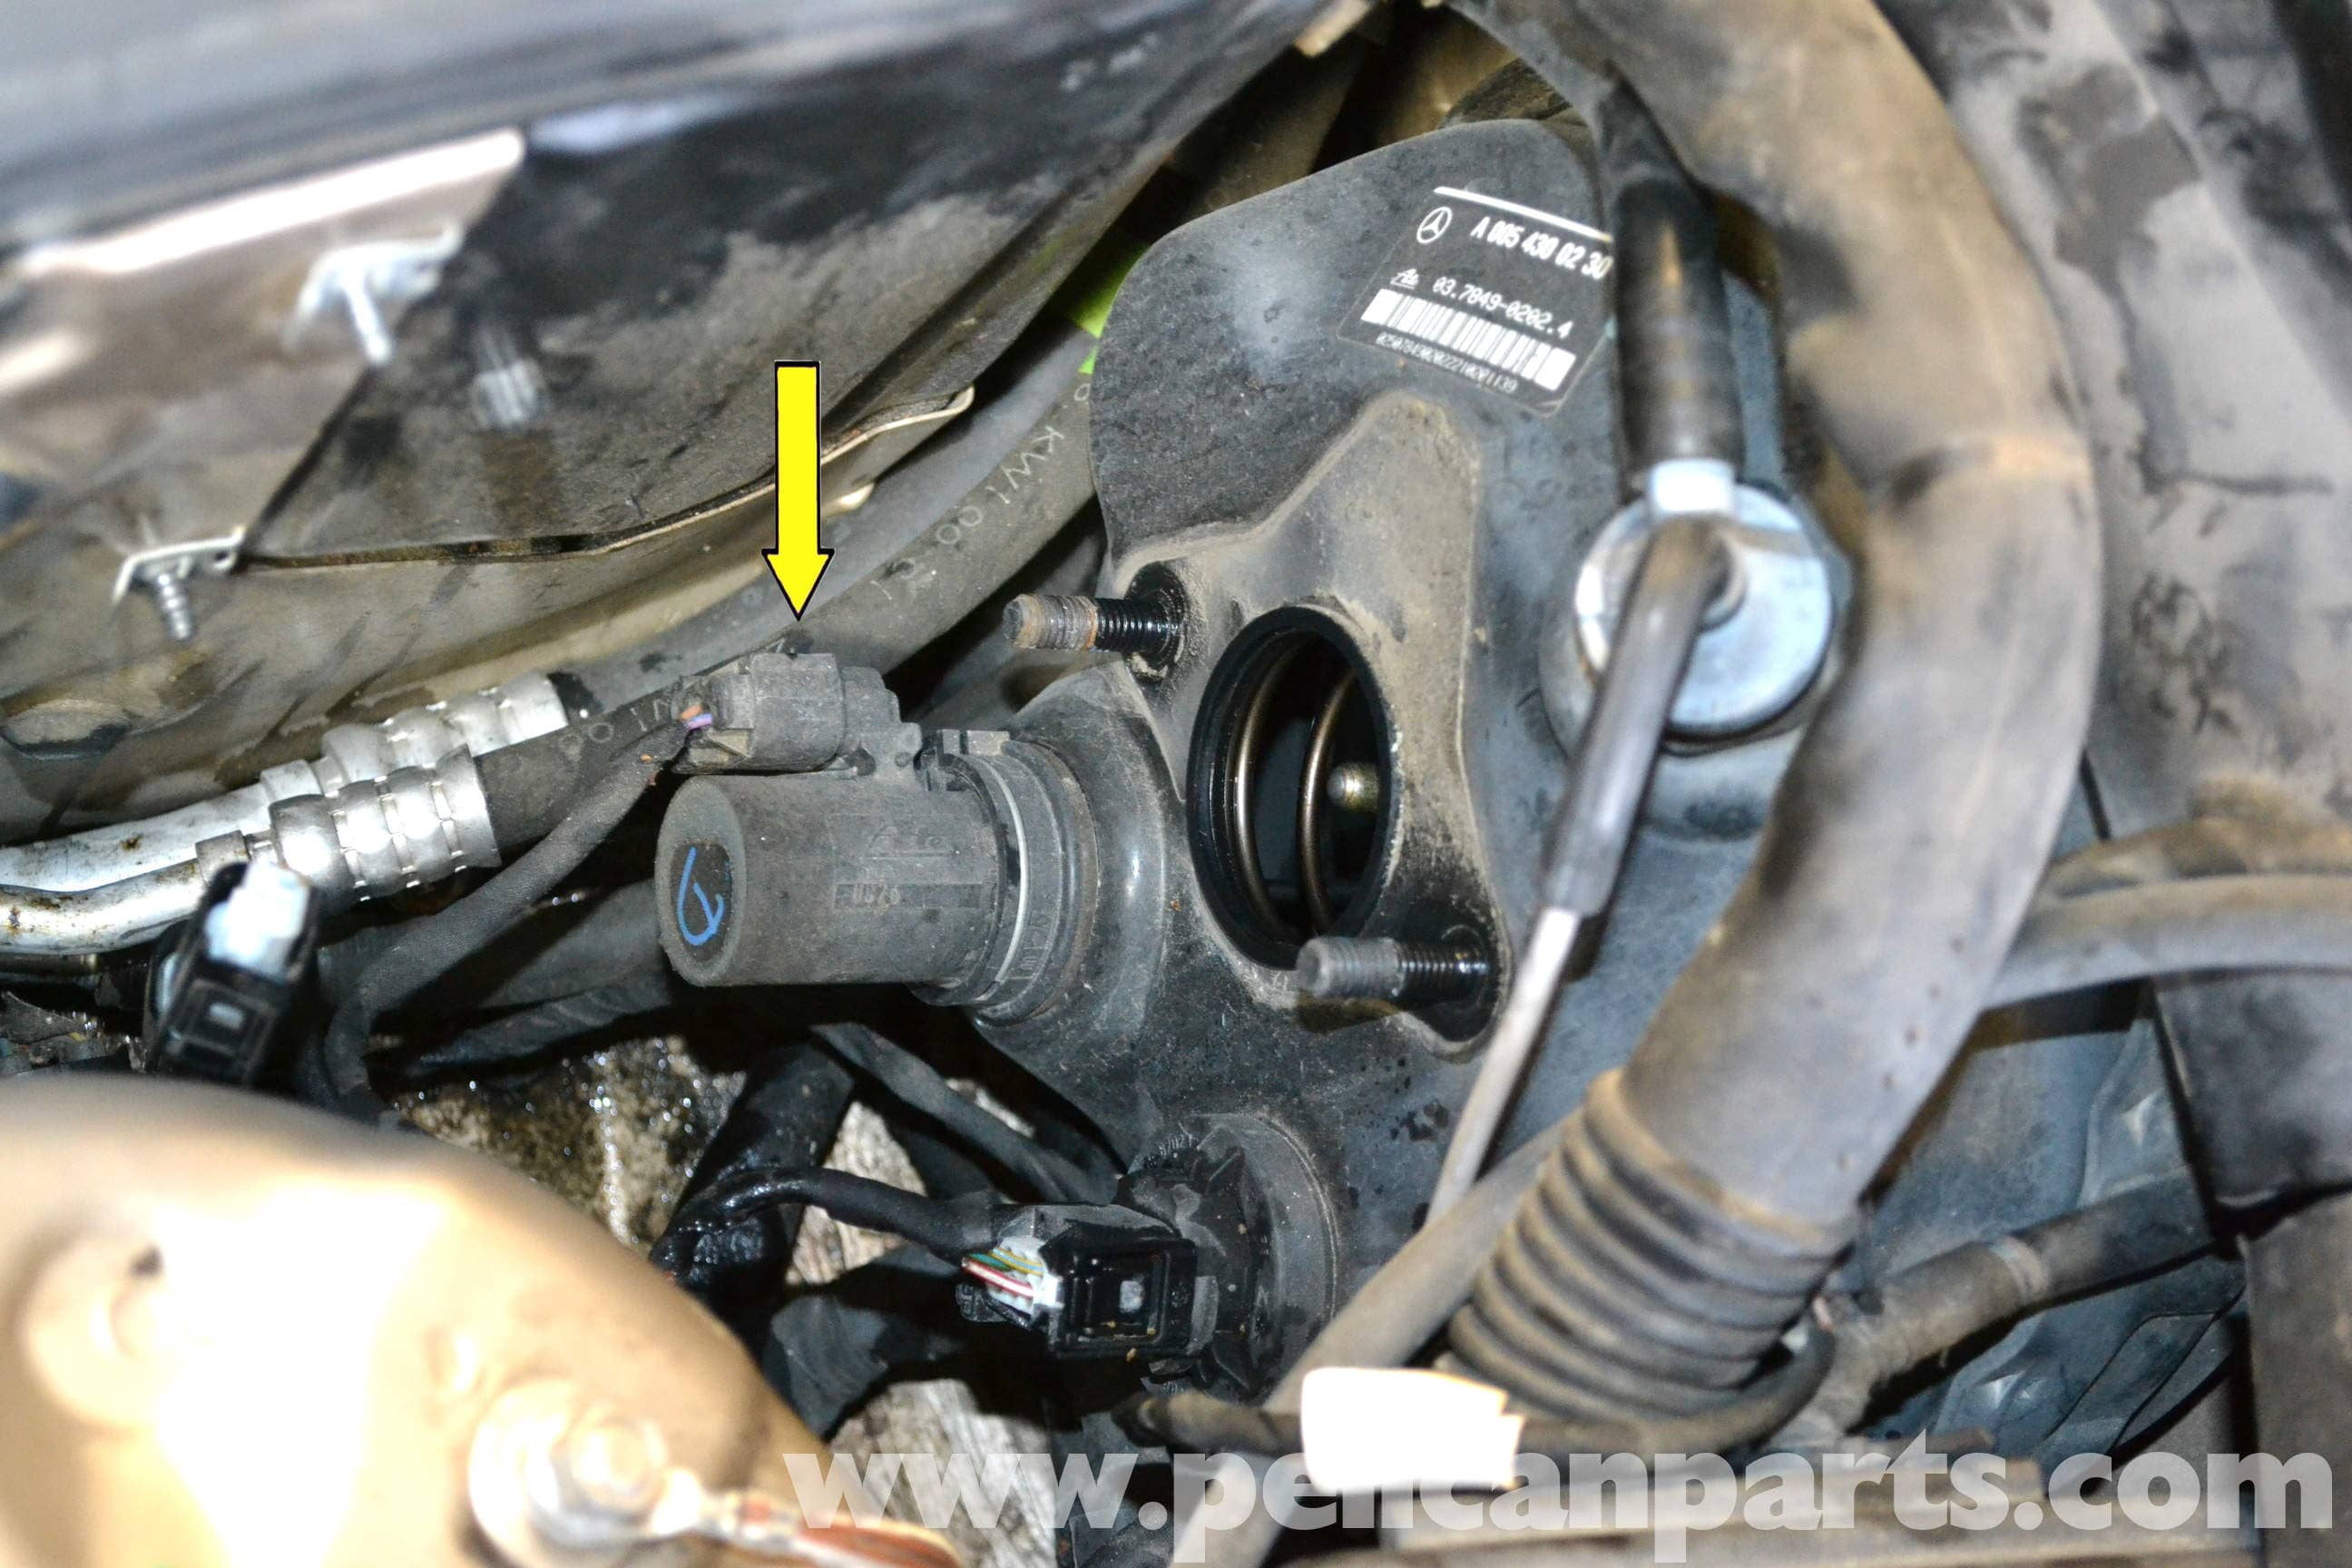 Mercedes Benz W203 Brake Booster Diaphragm Positioning Sensor 2001 S430 Car Wiring Harness Diagram Large Image Extra